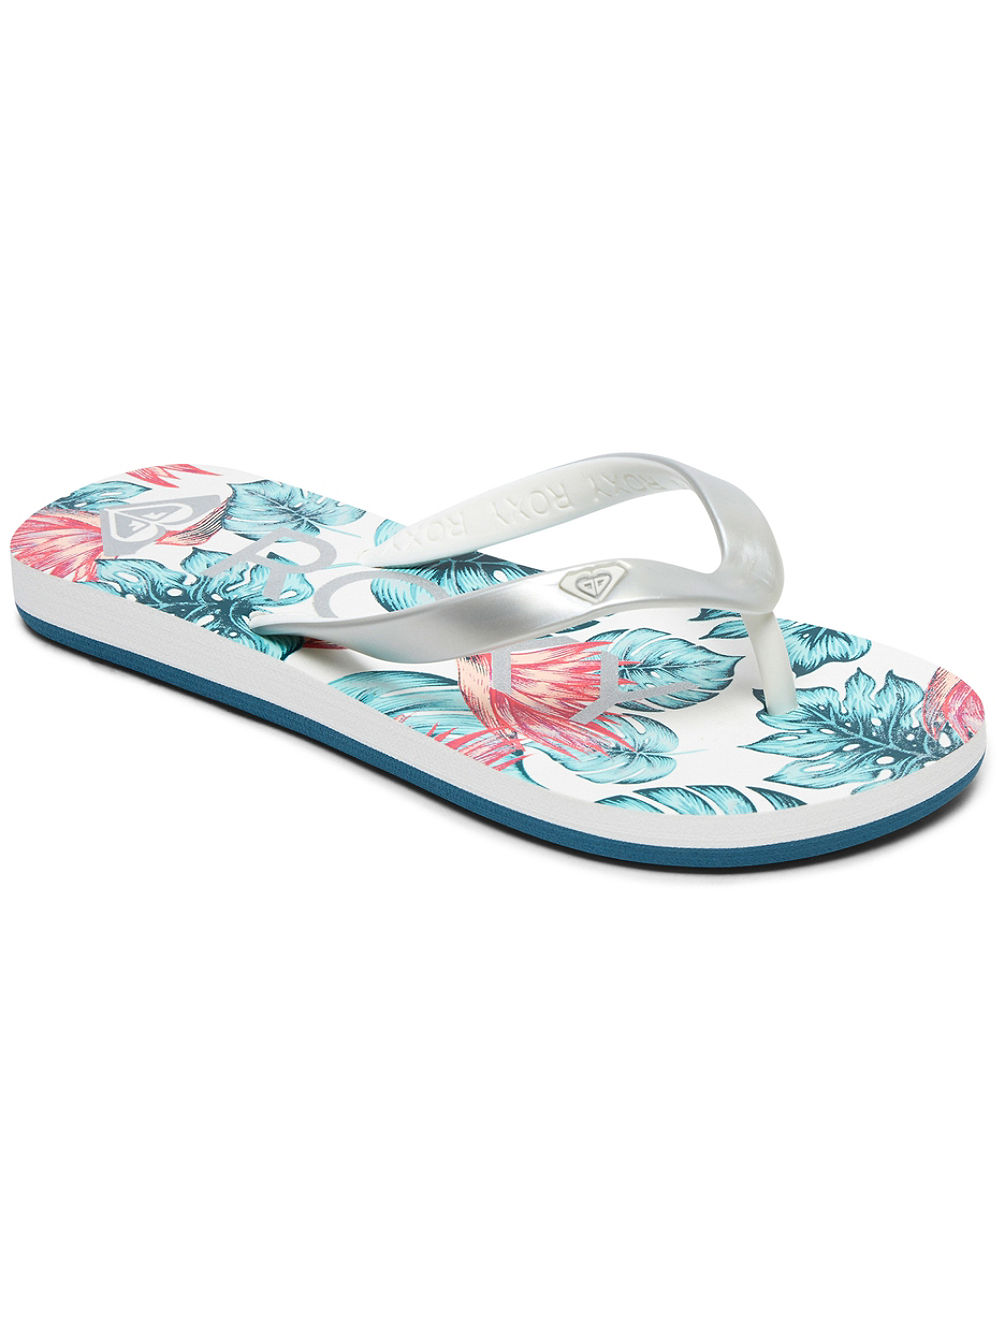 Tahiti VI Sandals Girls